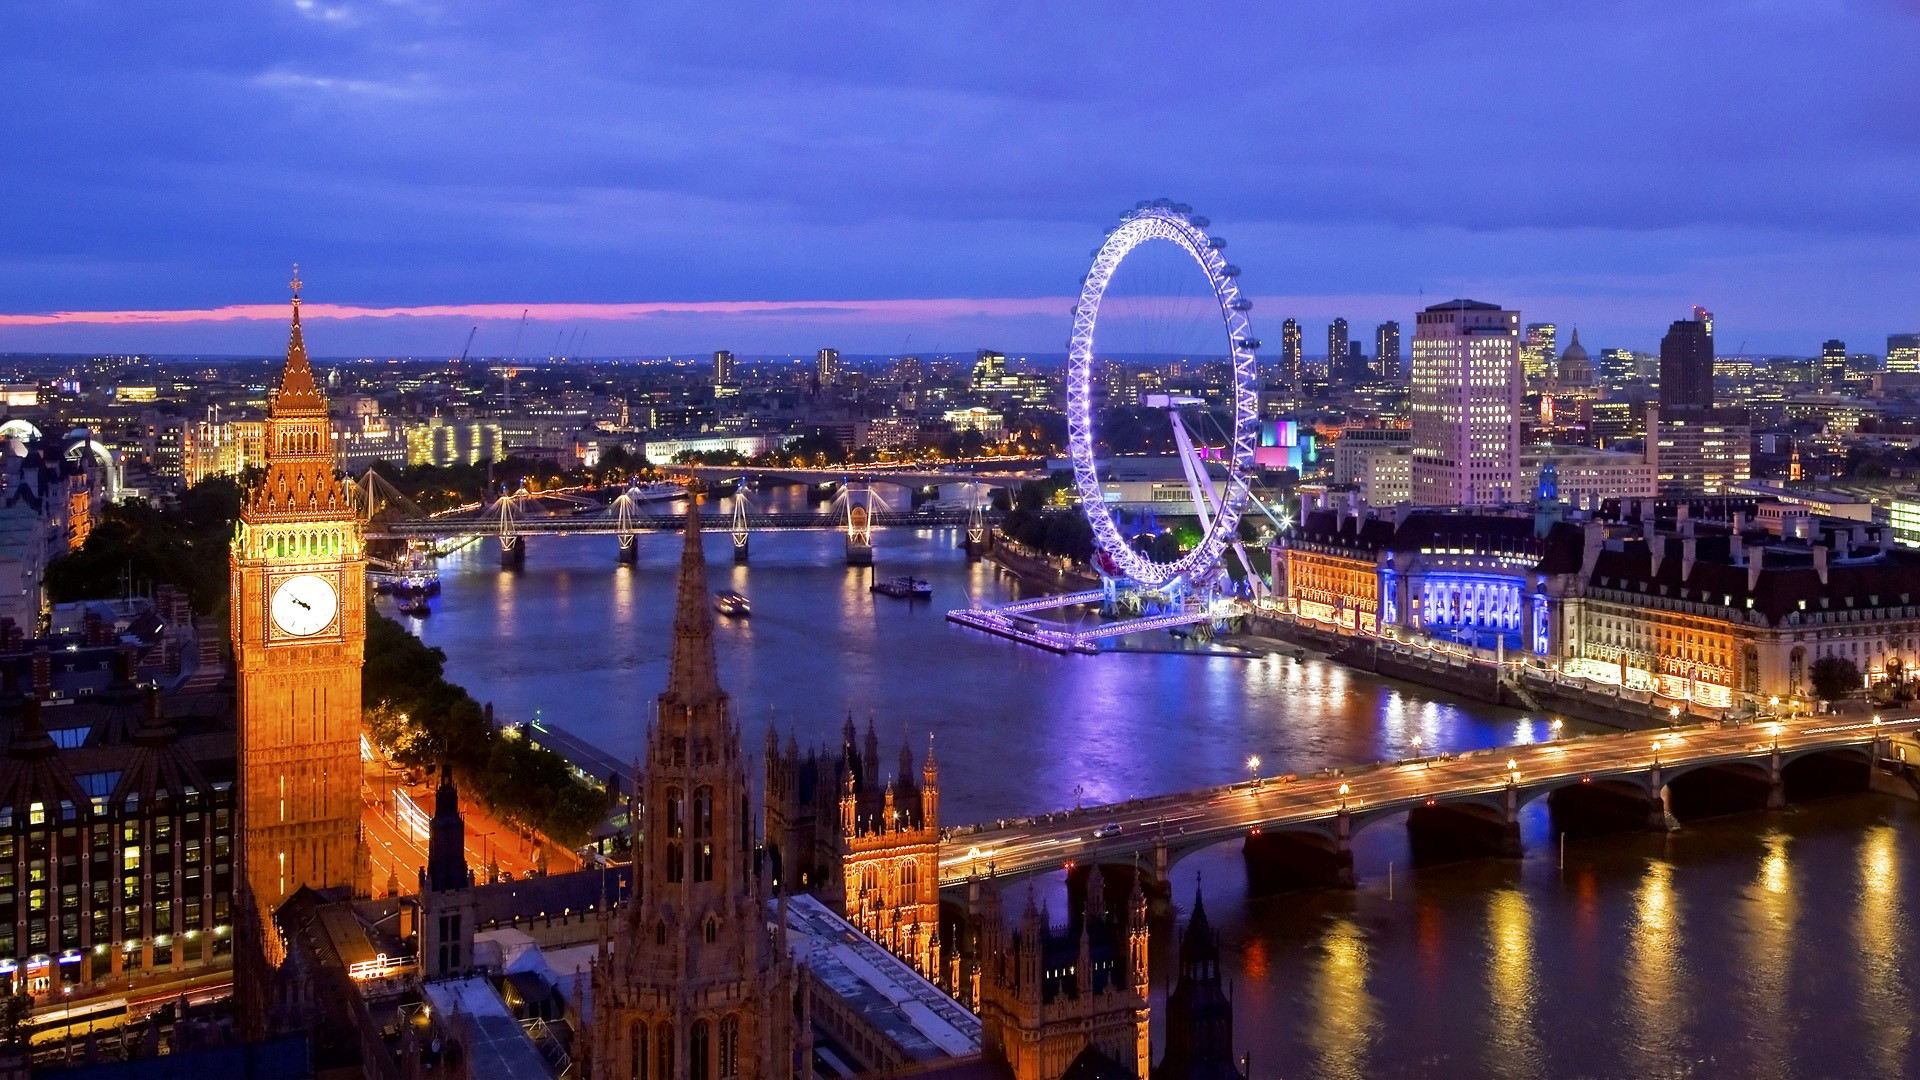 London City Wallpapers Live HD Wallpaper HQ Pictures Images Photos 1920x1080